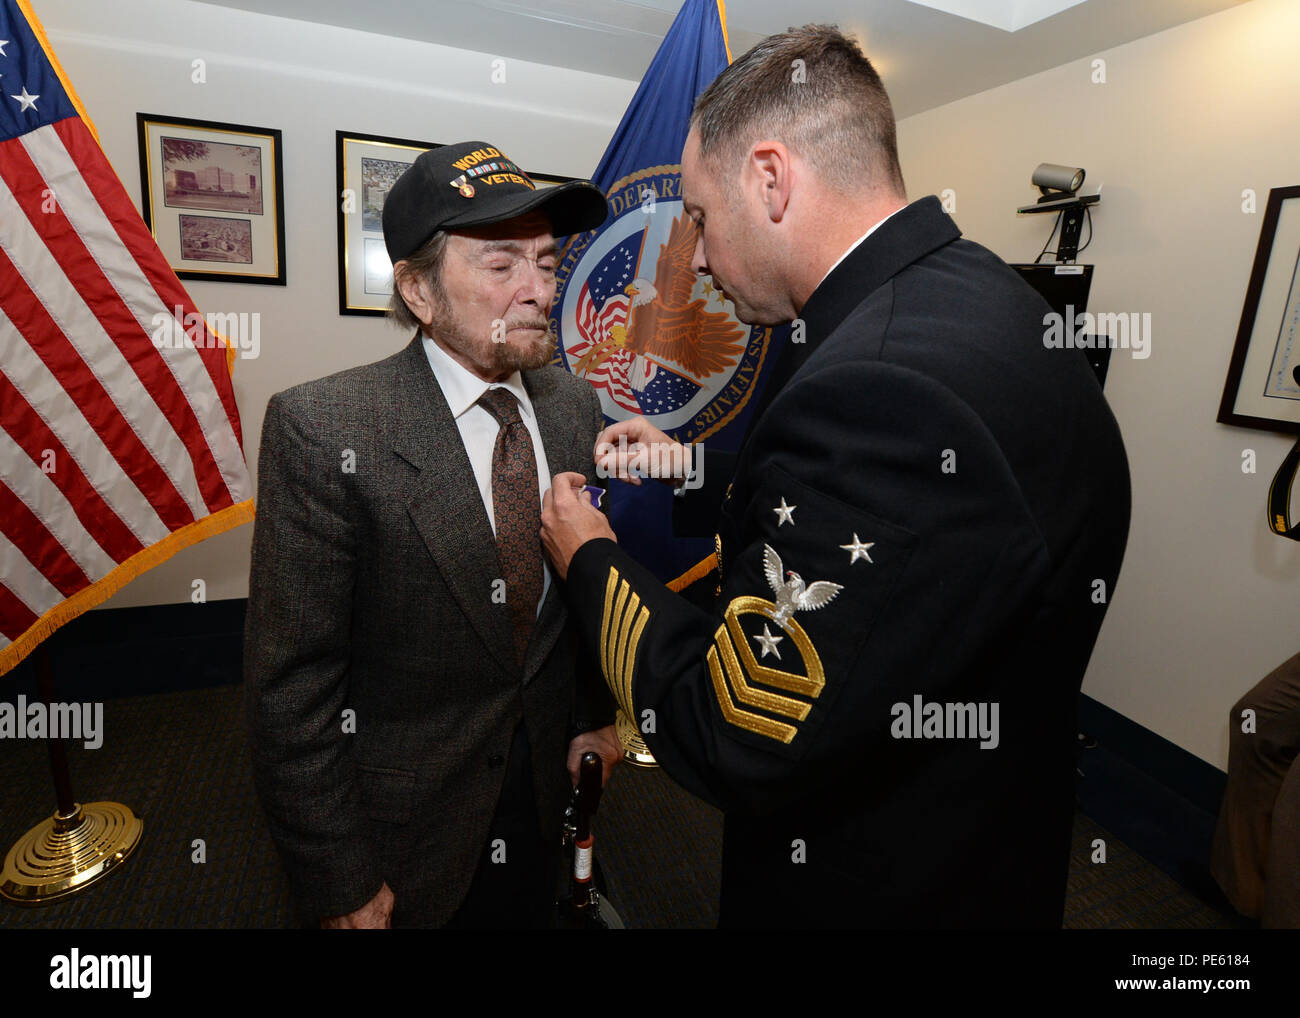 151005-N-PX557-027  PROVIDENCE, R.I.(Oct. 5, 2015) Leonard Harten, former U.S. Navy Soundman and survivor of the attacks that sank the Navajo-class tug USS Nauset (AT-89) during World War II, is presented with the Purple Heart by Command Master Chief Benjamin Pierson, assigned to U.S. Naval War College in Newport, Rhode Island.  Harten enlisted in the Navy on Nov. 14, 1942, and reported to Nauset following completion of Soundman school. On Sept. 9, 1943, while conducting operations in the Gulf of Salerno, a bomb from enemy aircraft exploded in close proximity to Nauset setting her ablaze. As a - Stock Image